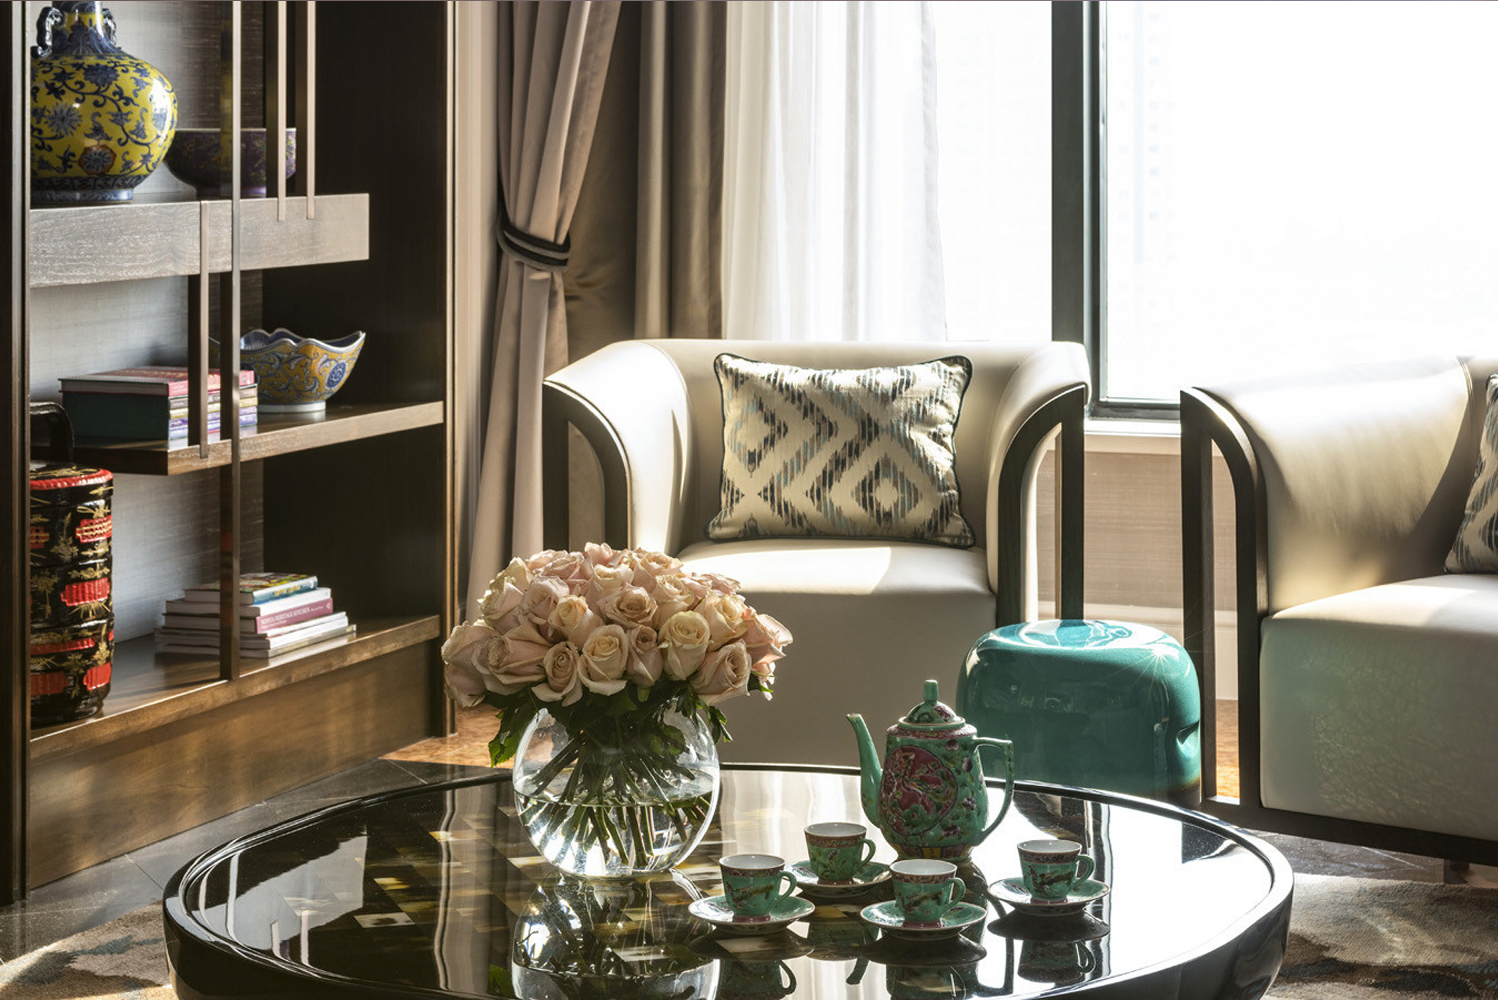 Four Seasons Hotel Singapore completed its room renewal program with the revelation of its crowning jewels, The Suite Collection.